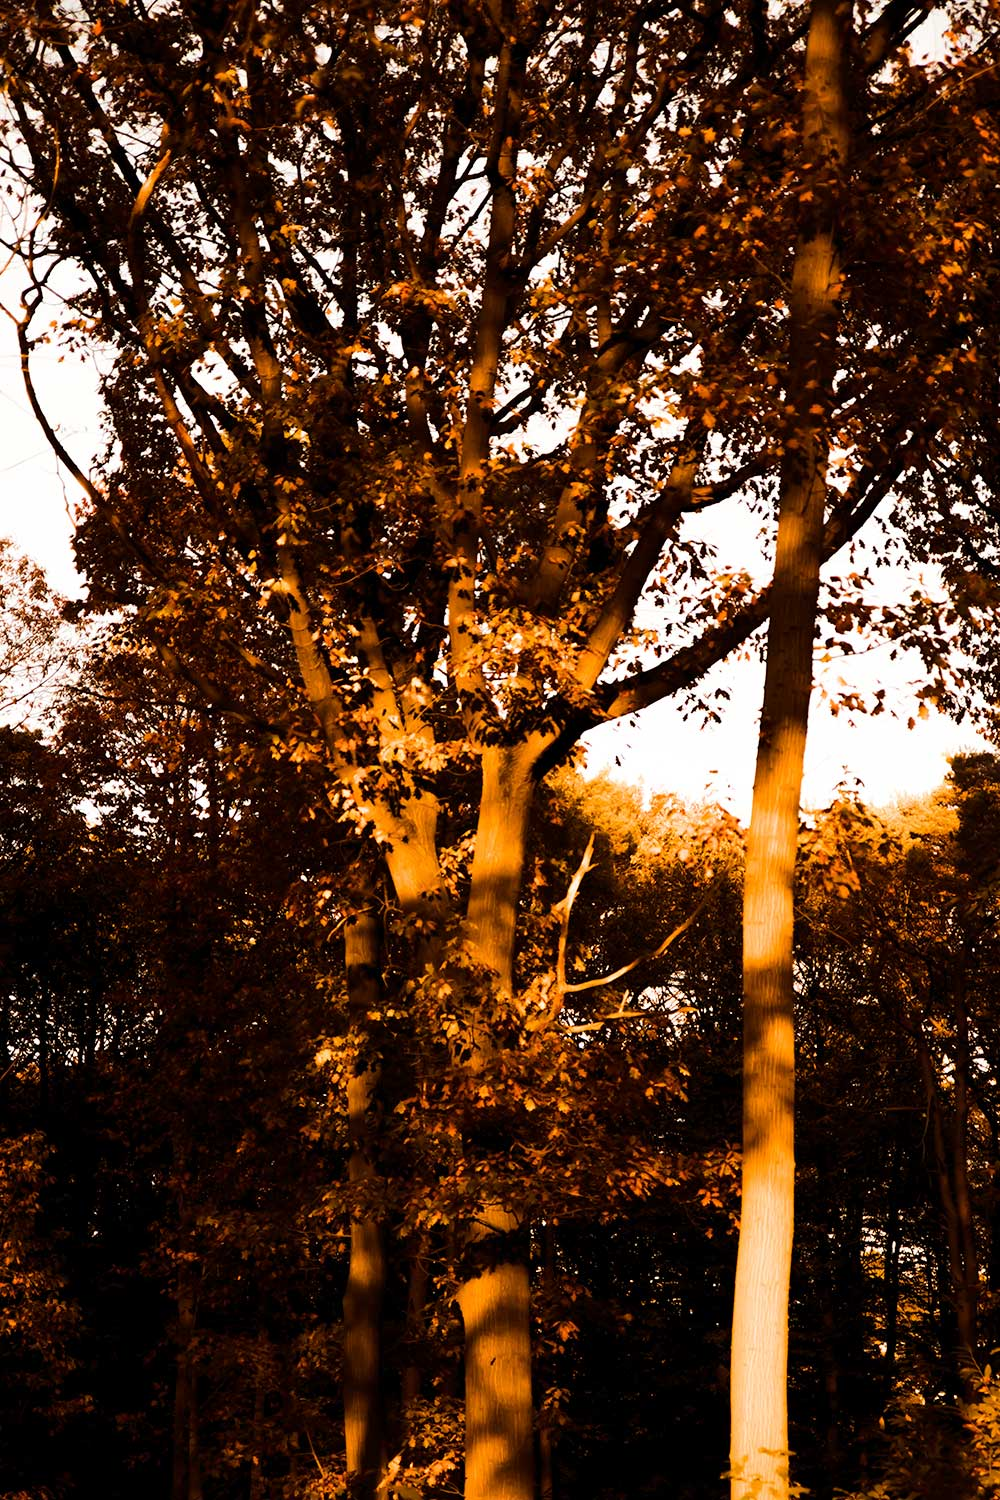 Sunset golden glow in the surrounding forest